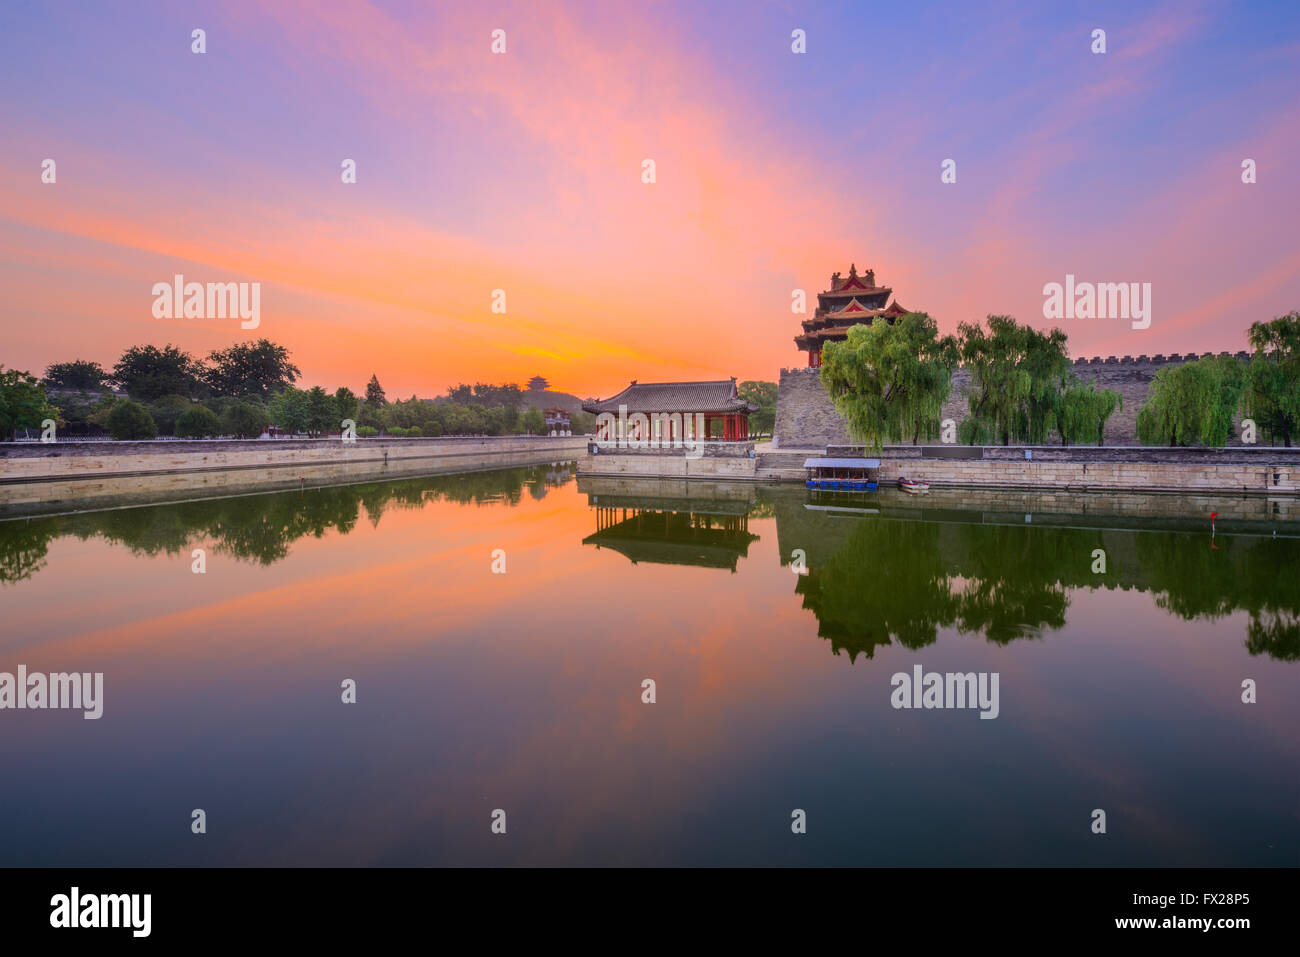 Beijing, China forbidden city outer moat Stock Photo